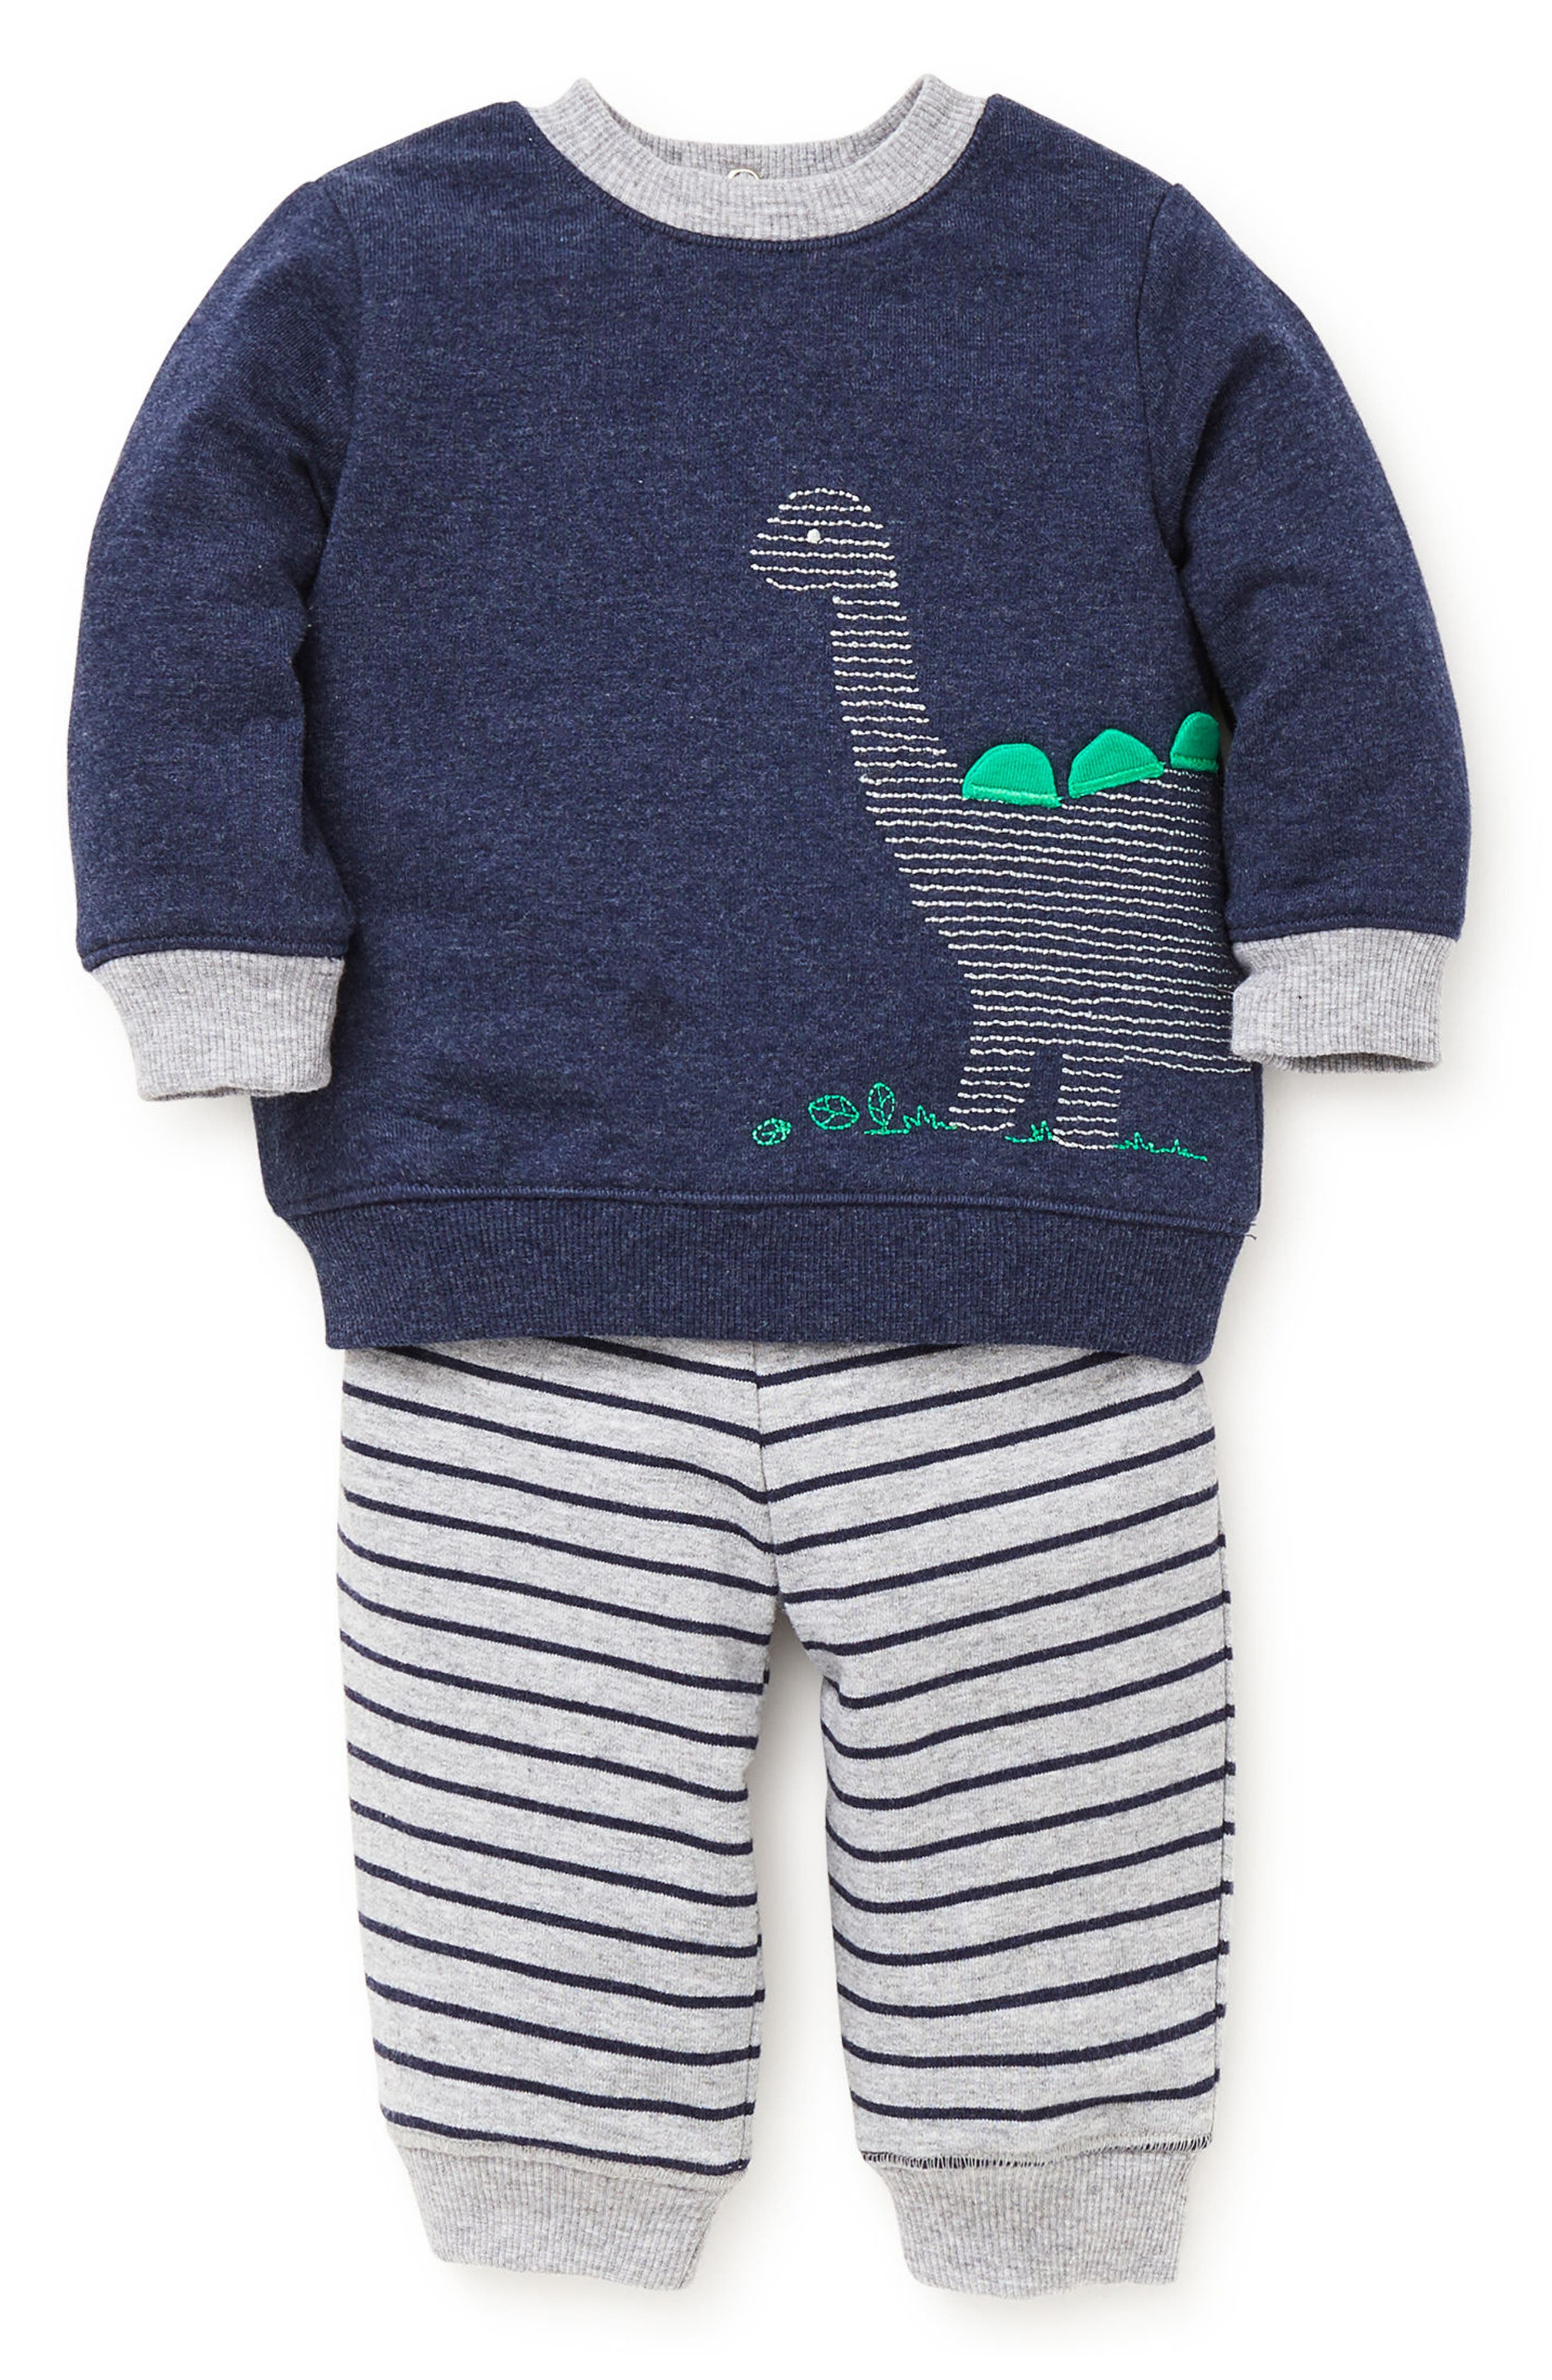 Dino Sweatshirt & Sweatpants Set,                             Main thumbnail 1, color,                             472